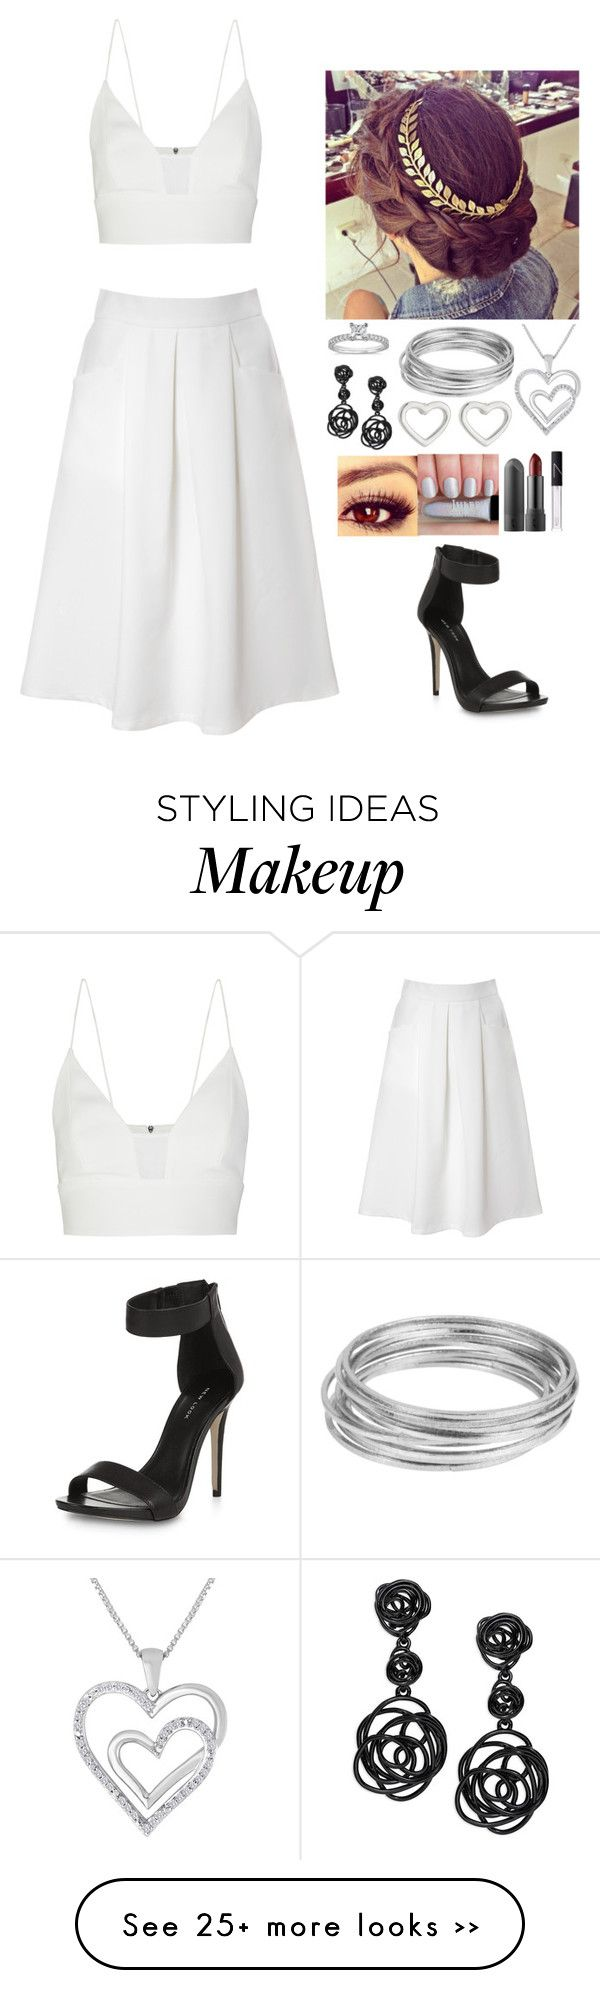 """Untitled #186"" by mcarignan on Polyvore"